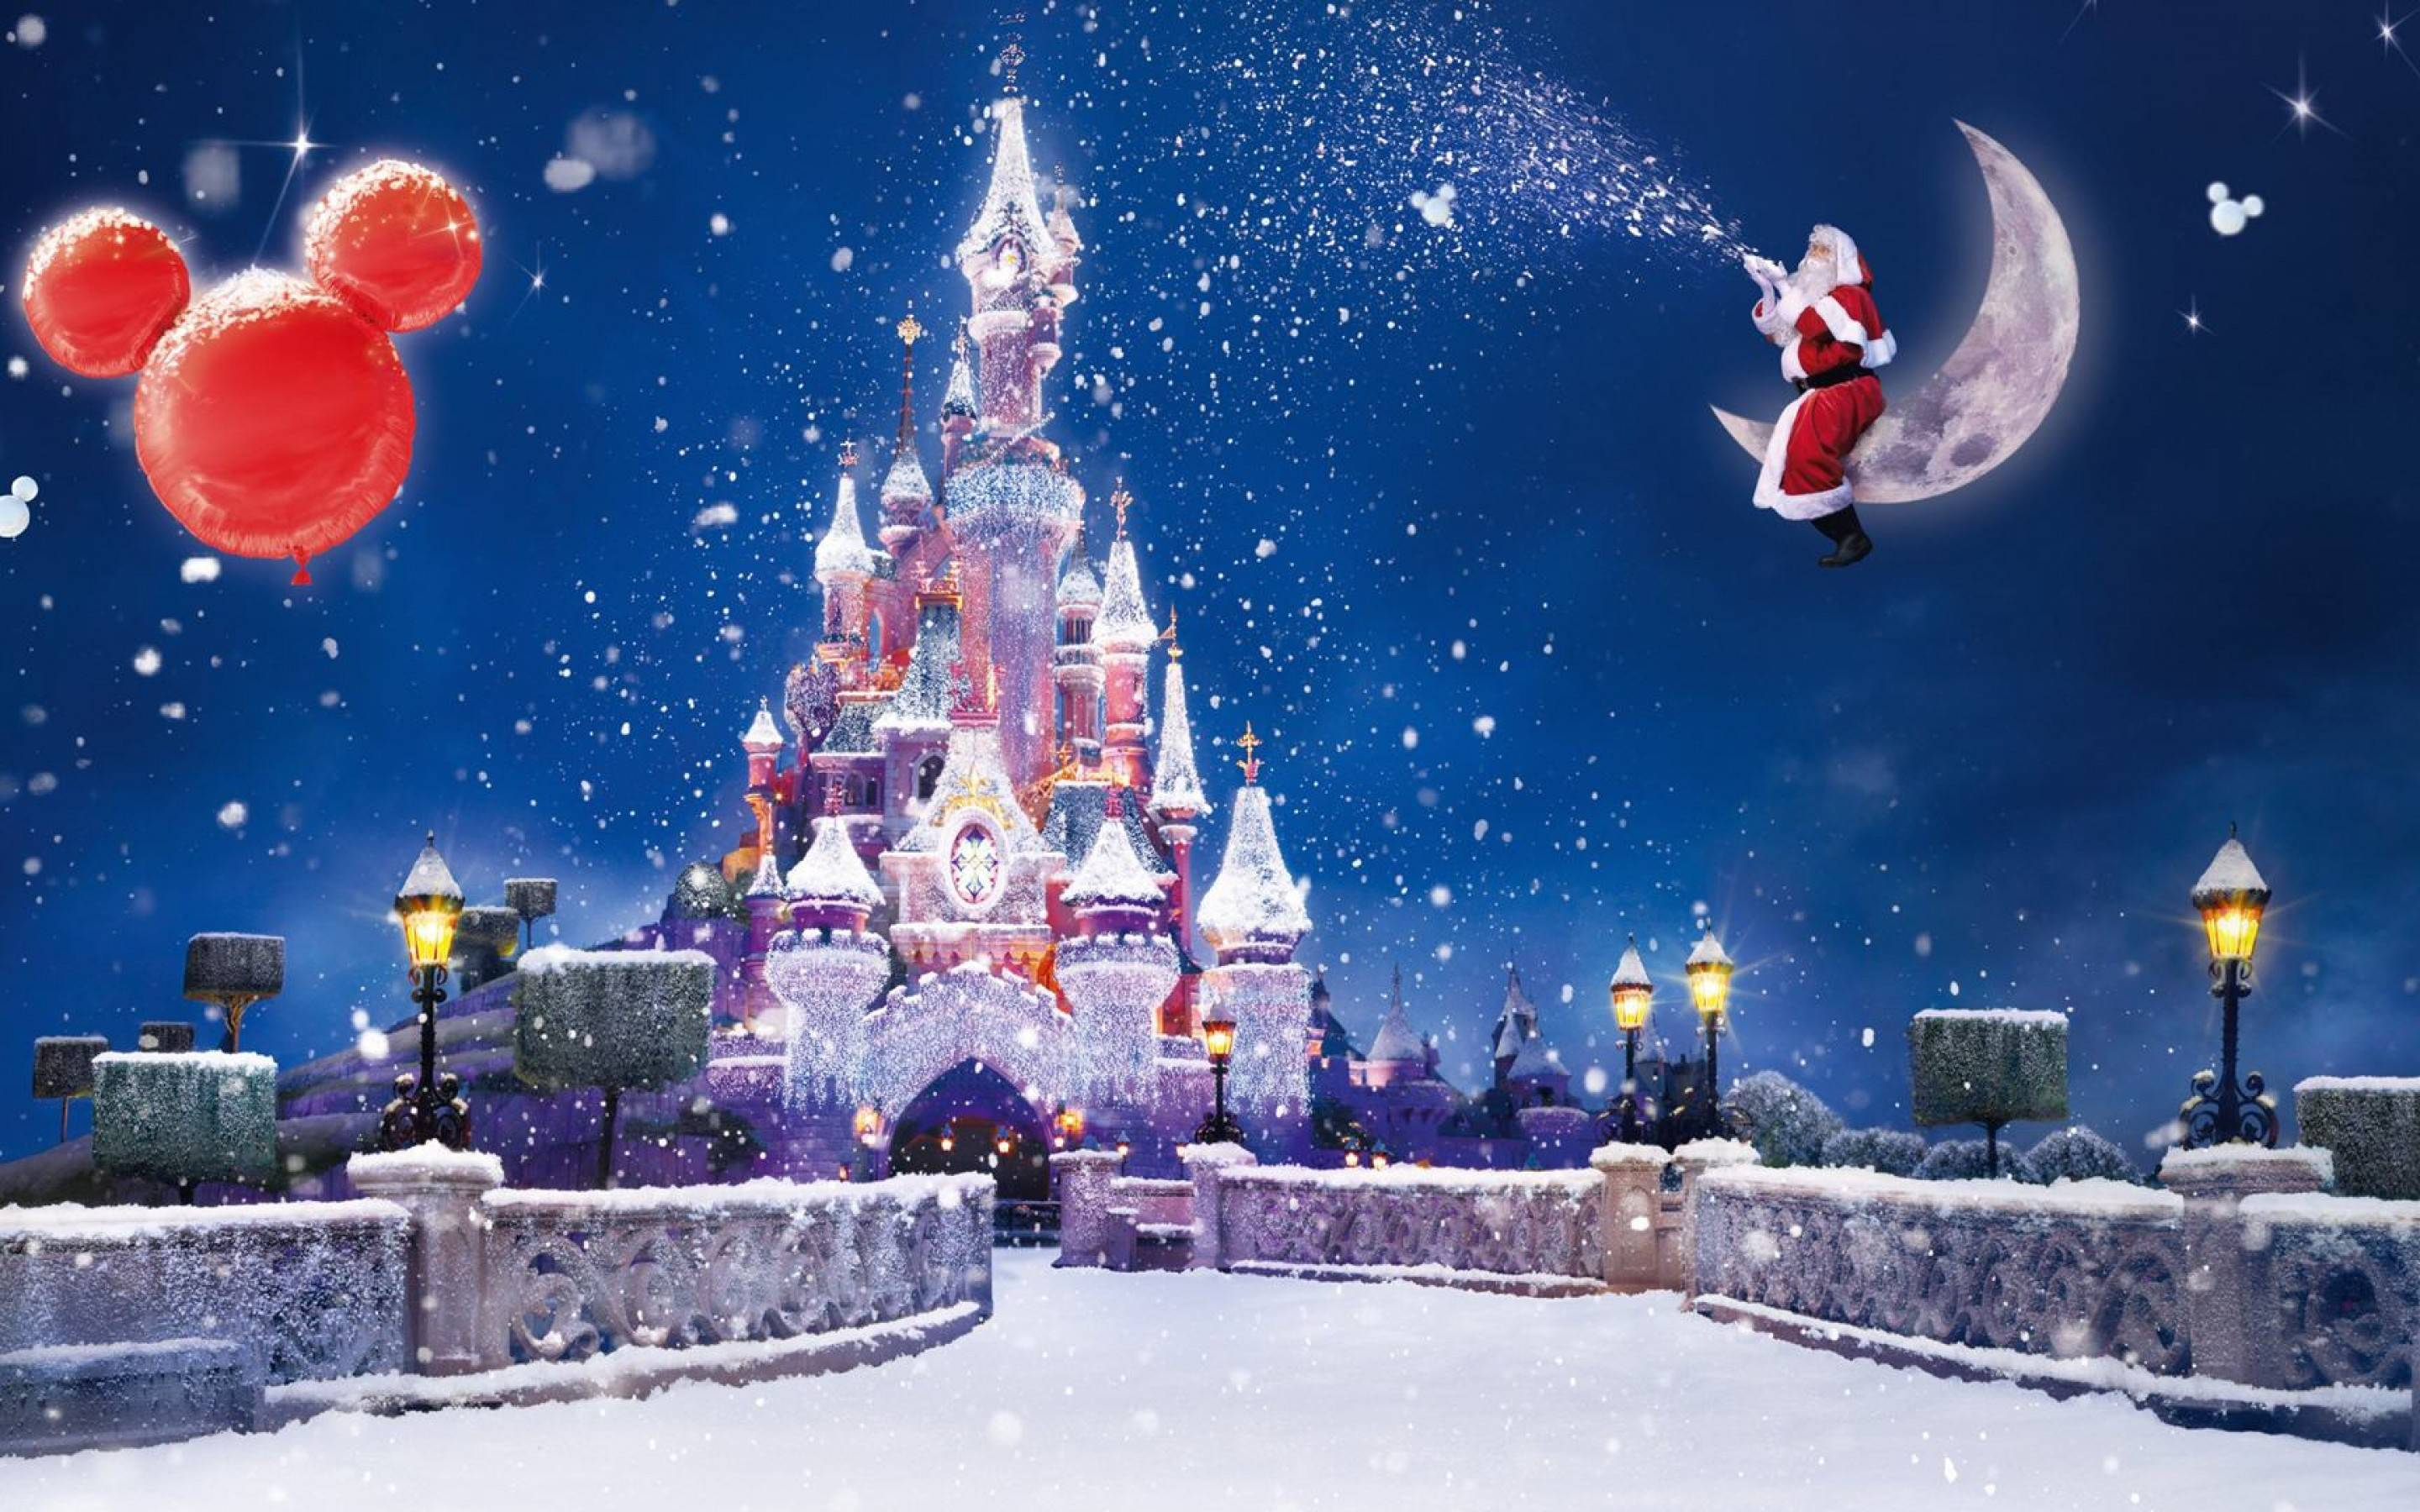 Disney Christmas Wallpapers Top Free Disney Christmas